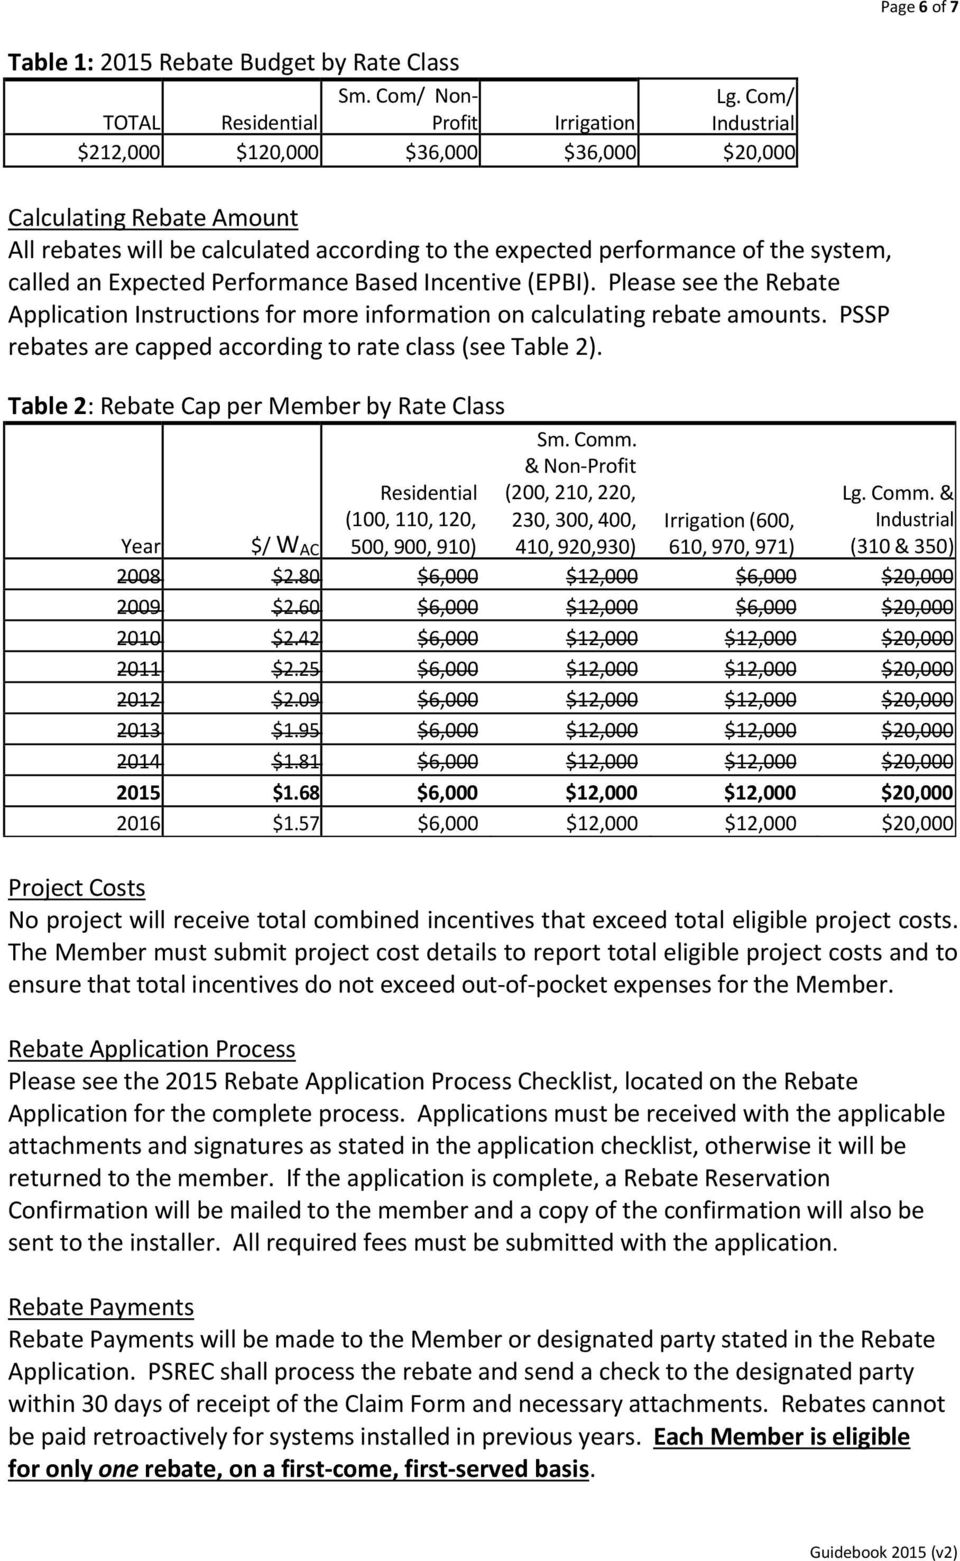 Based Incentive (EPBI). Please see the Rebate Application Instructions for more information on calculating rebate amounts. PSSP rebates are capped according to rate class (see Table 2).